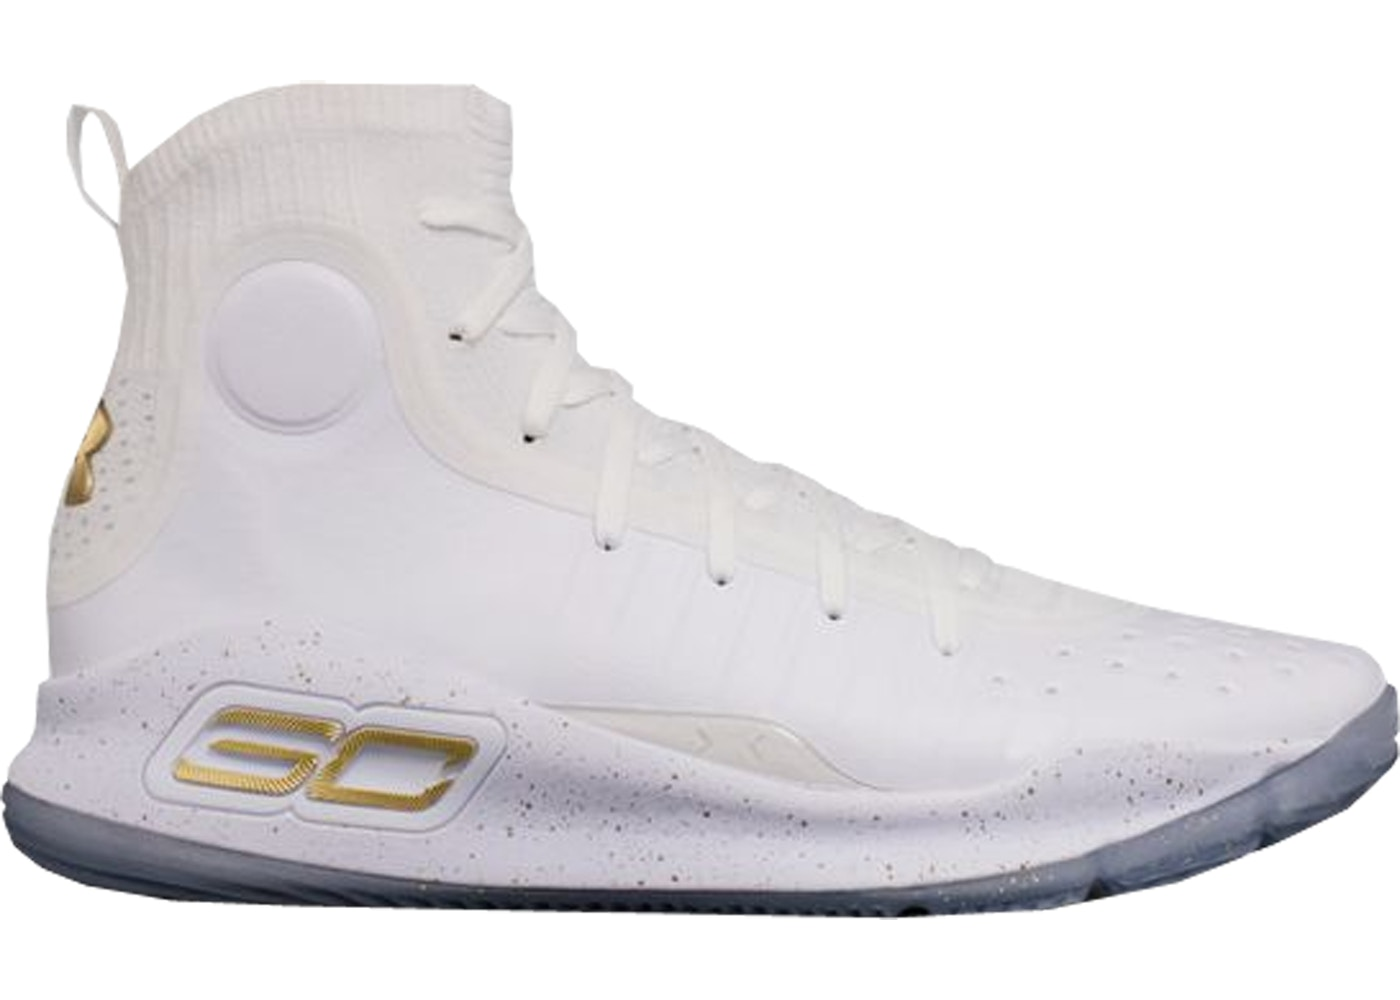 outlet store b4879 5e59f Under Armour Curry 4 White Gold - 1298306-102